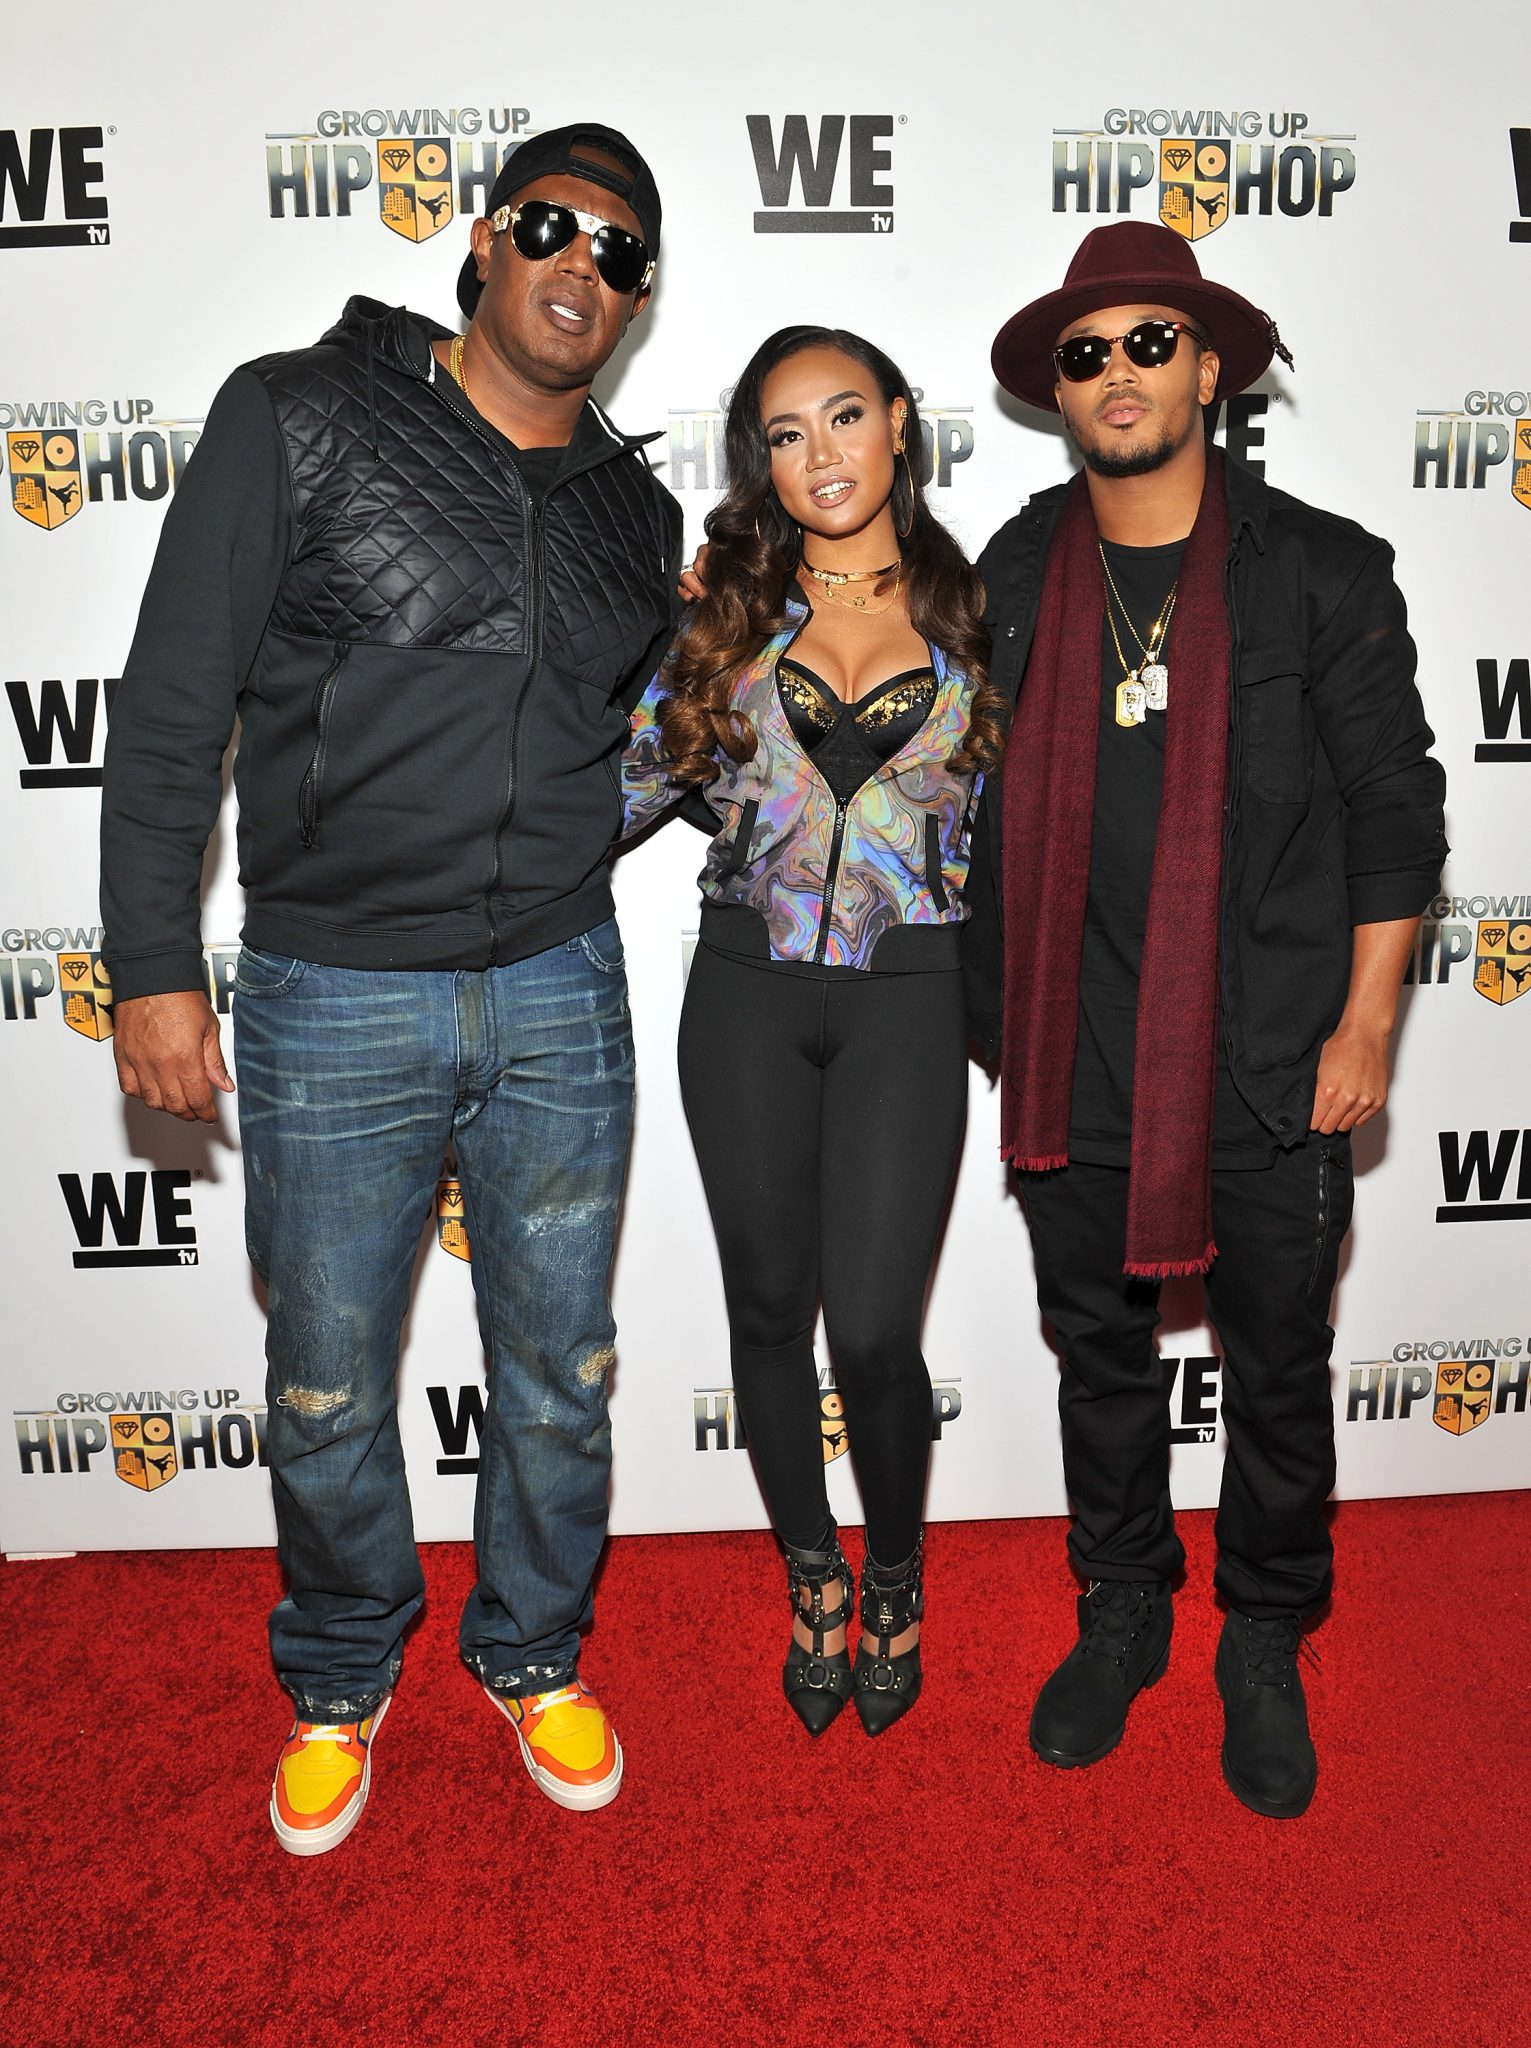 'Growing Up Hip Hop' Premiere Party In NYC!